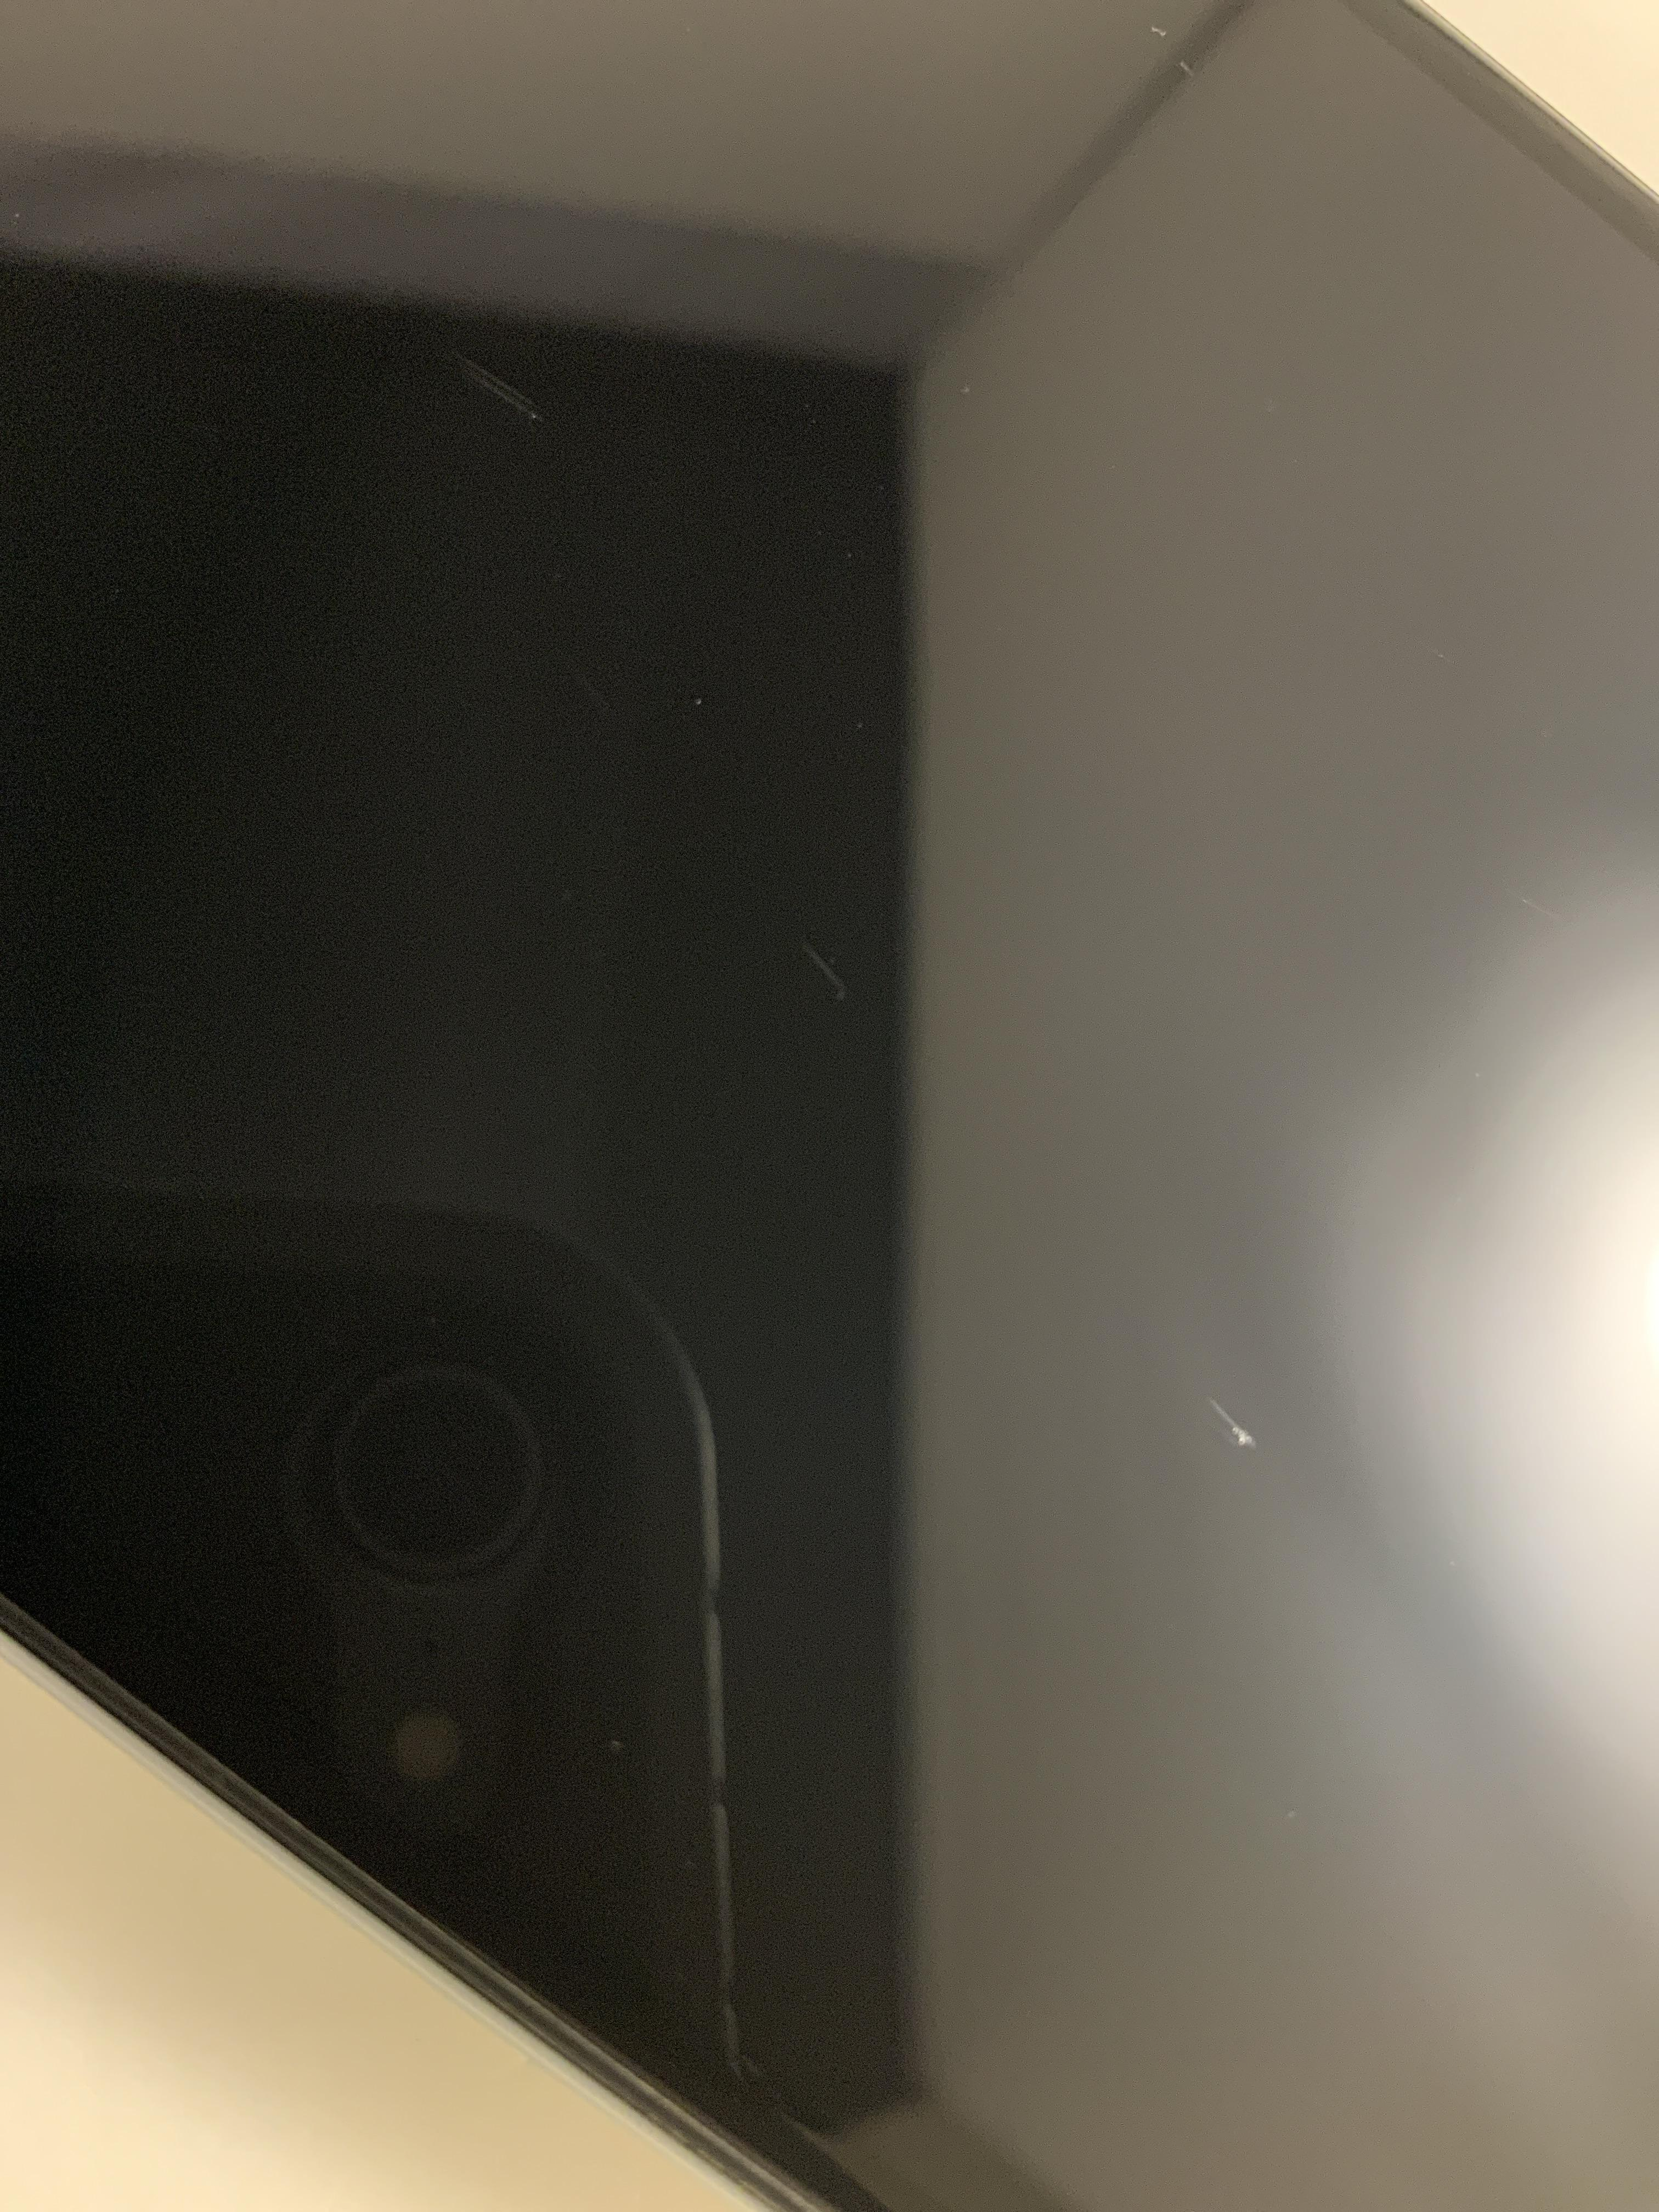 iPhone XS Max 512GB, 512GB, Space Gray, Bild 4